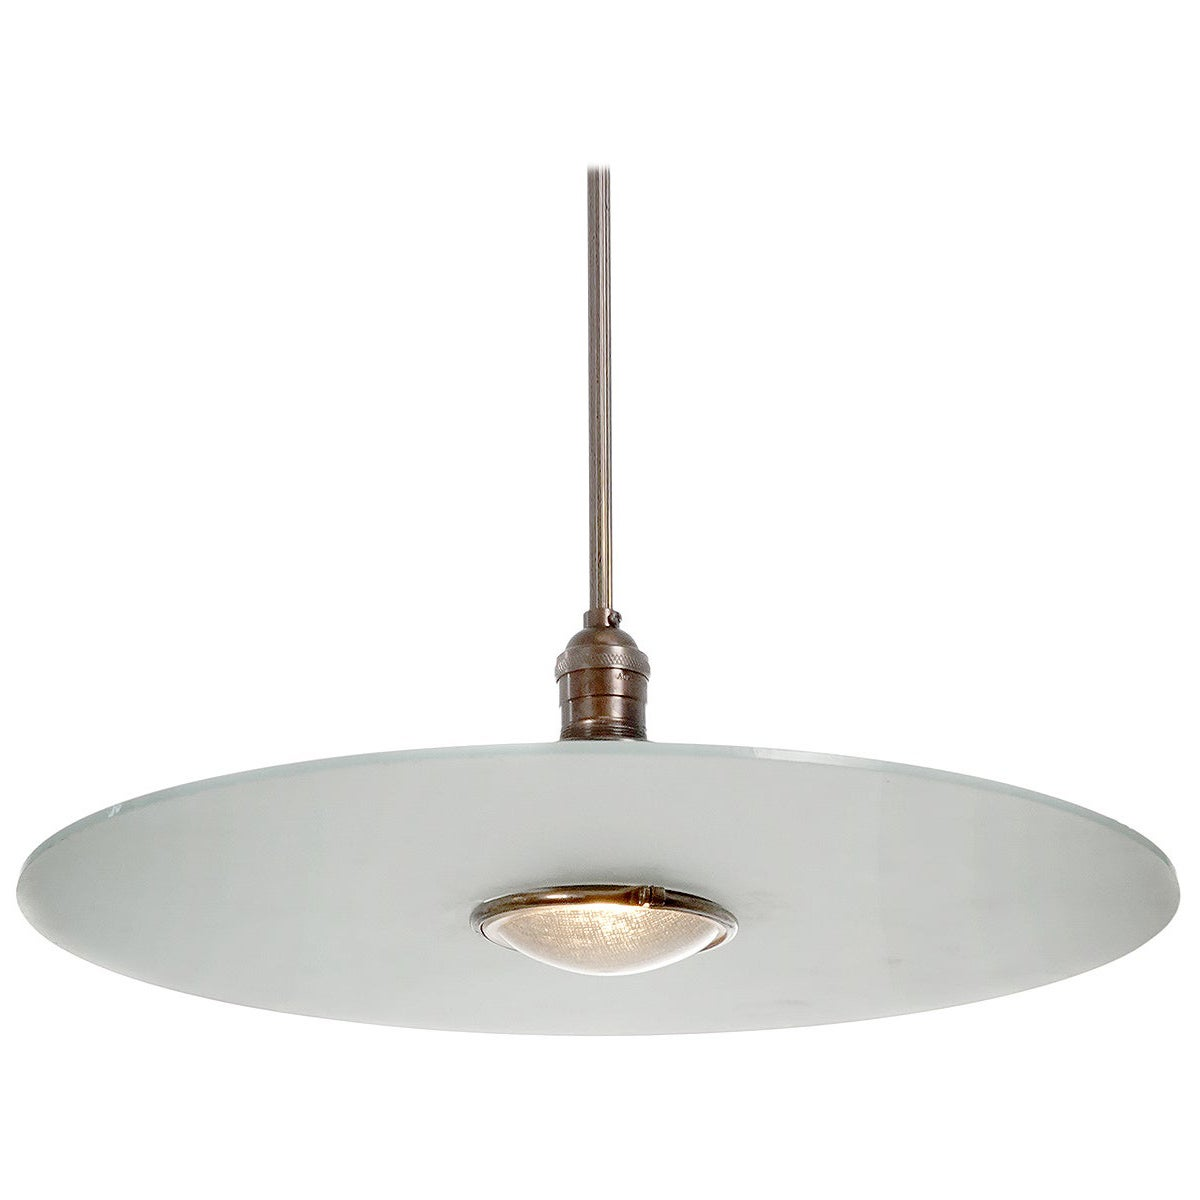 Simple and Elegant Frosted Glass Disc Pendent